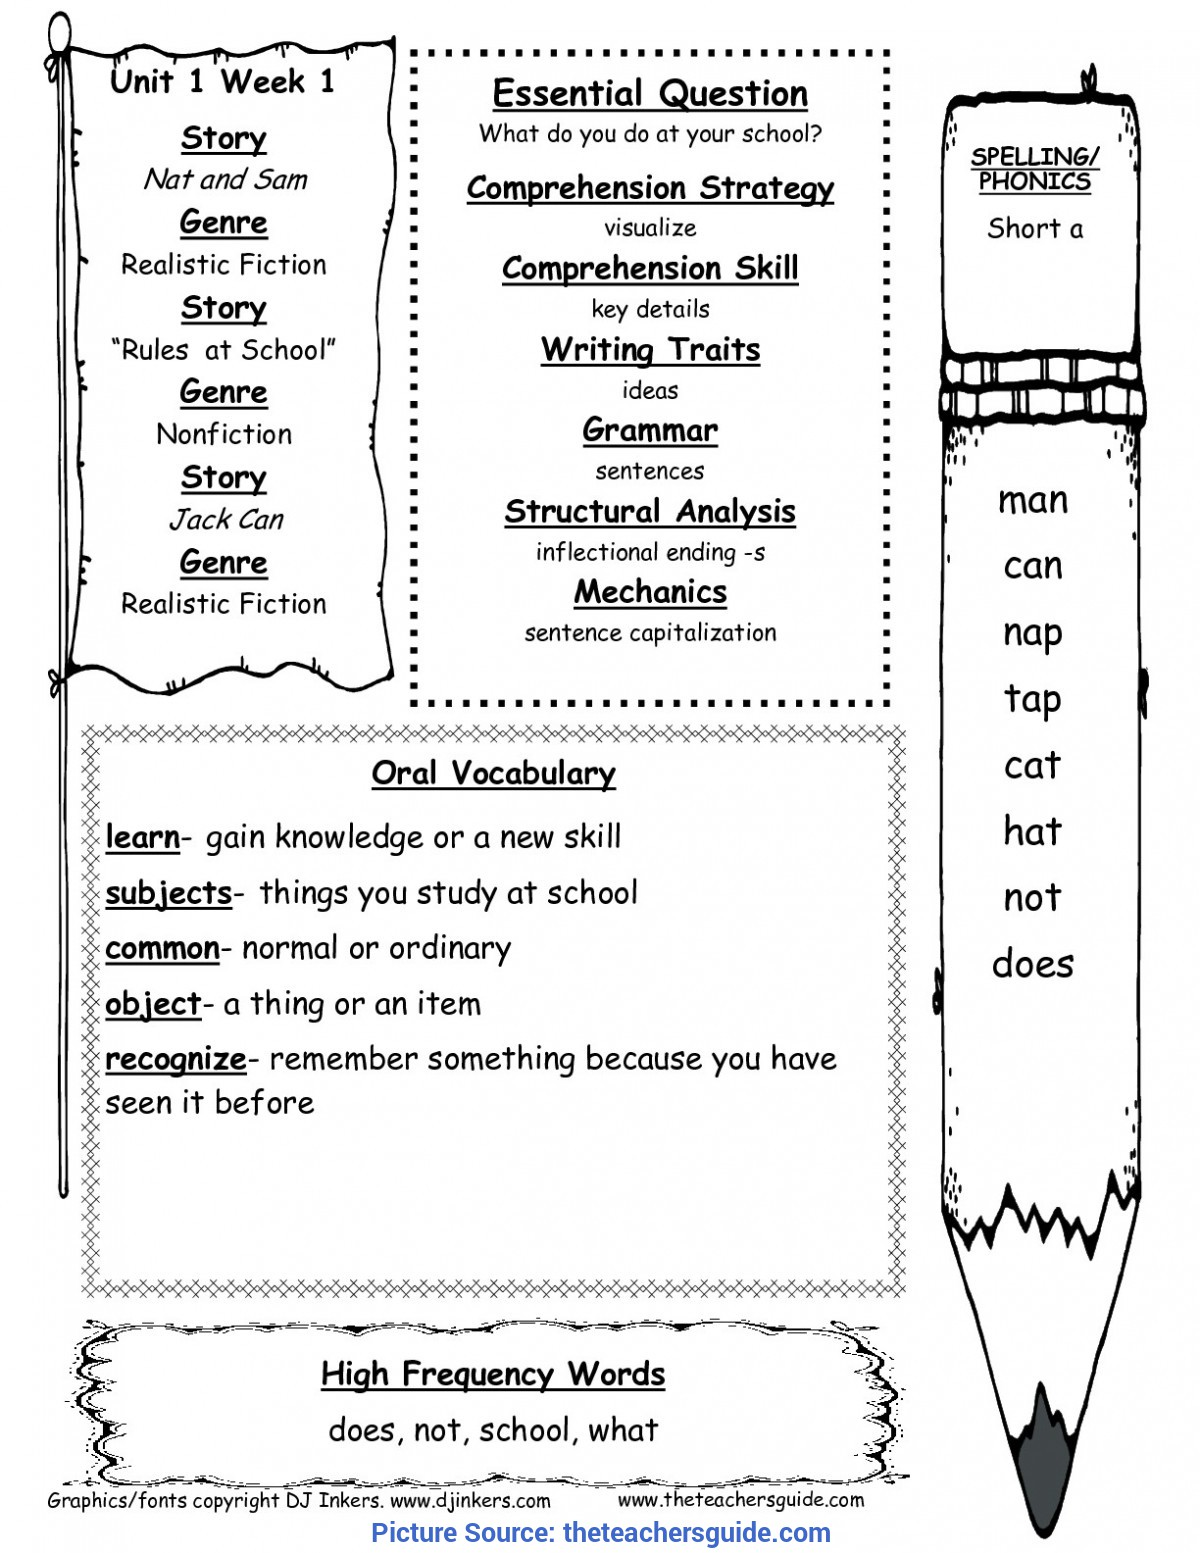 Great English Lesson Plan Cce 21st C English Teaching Cce